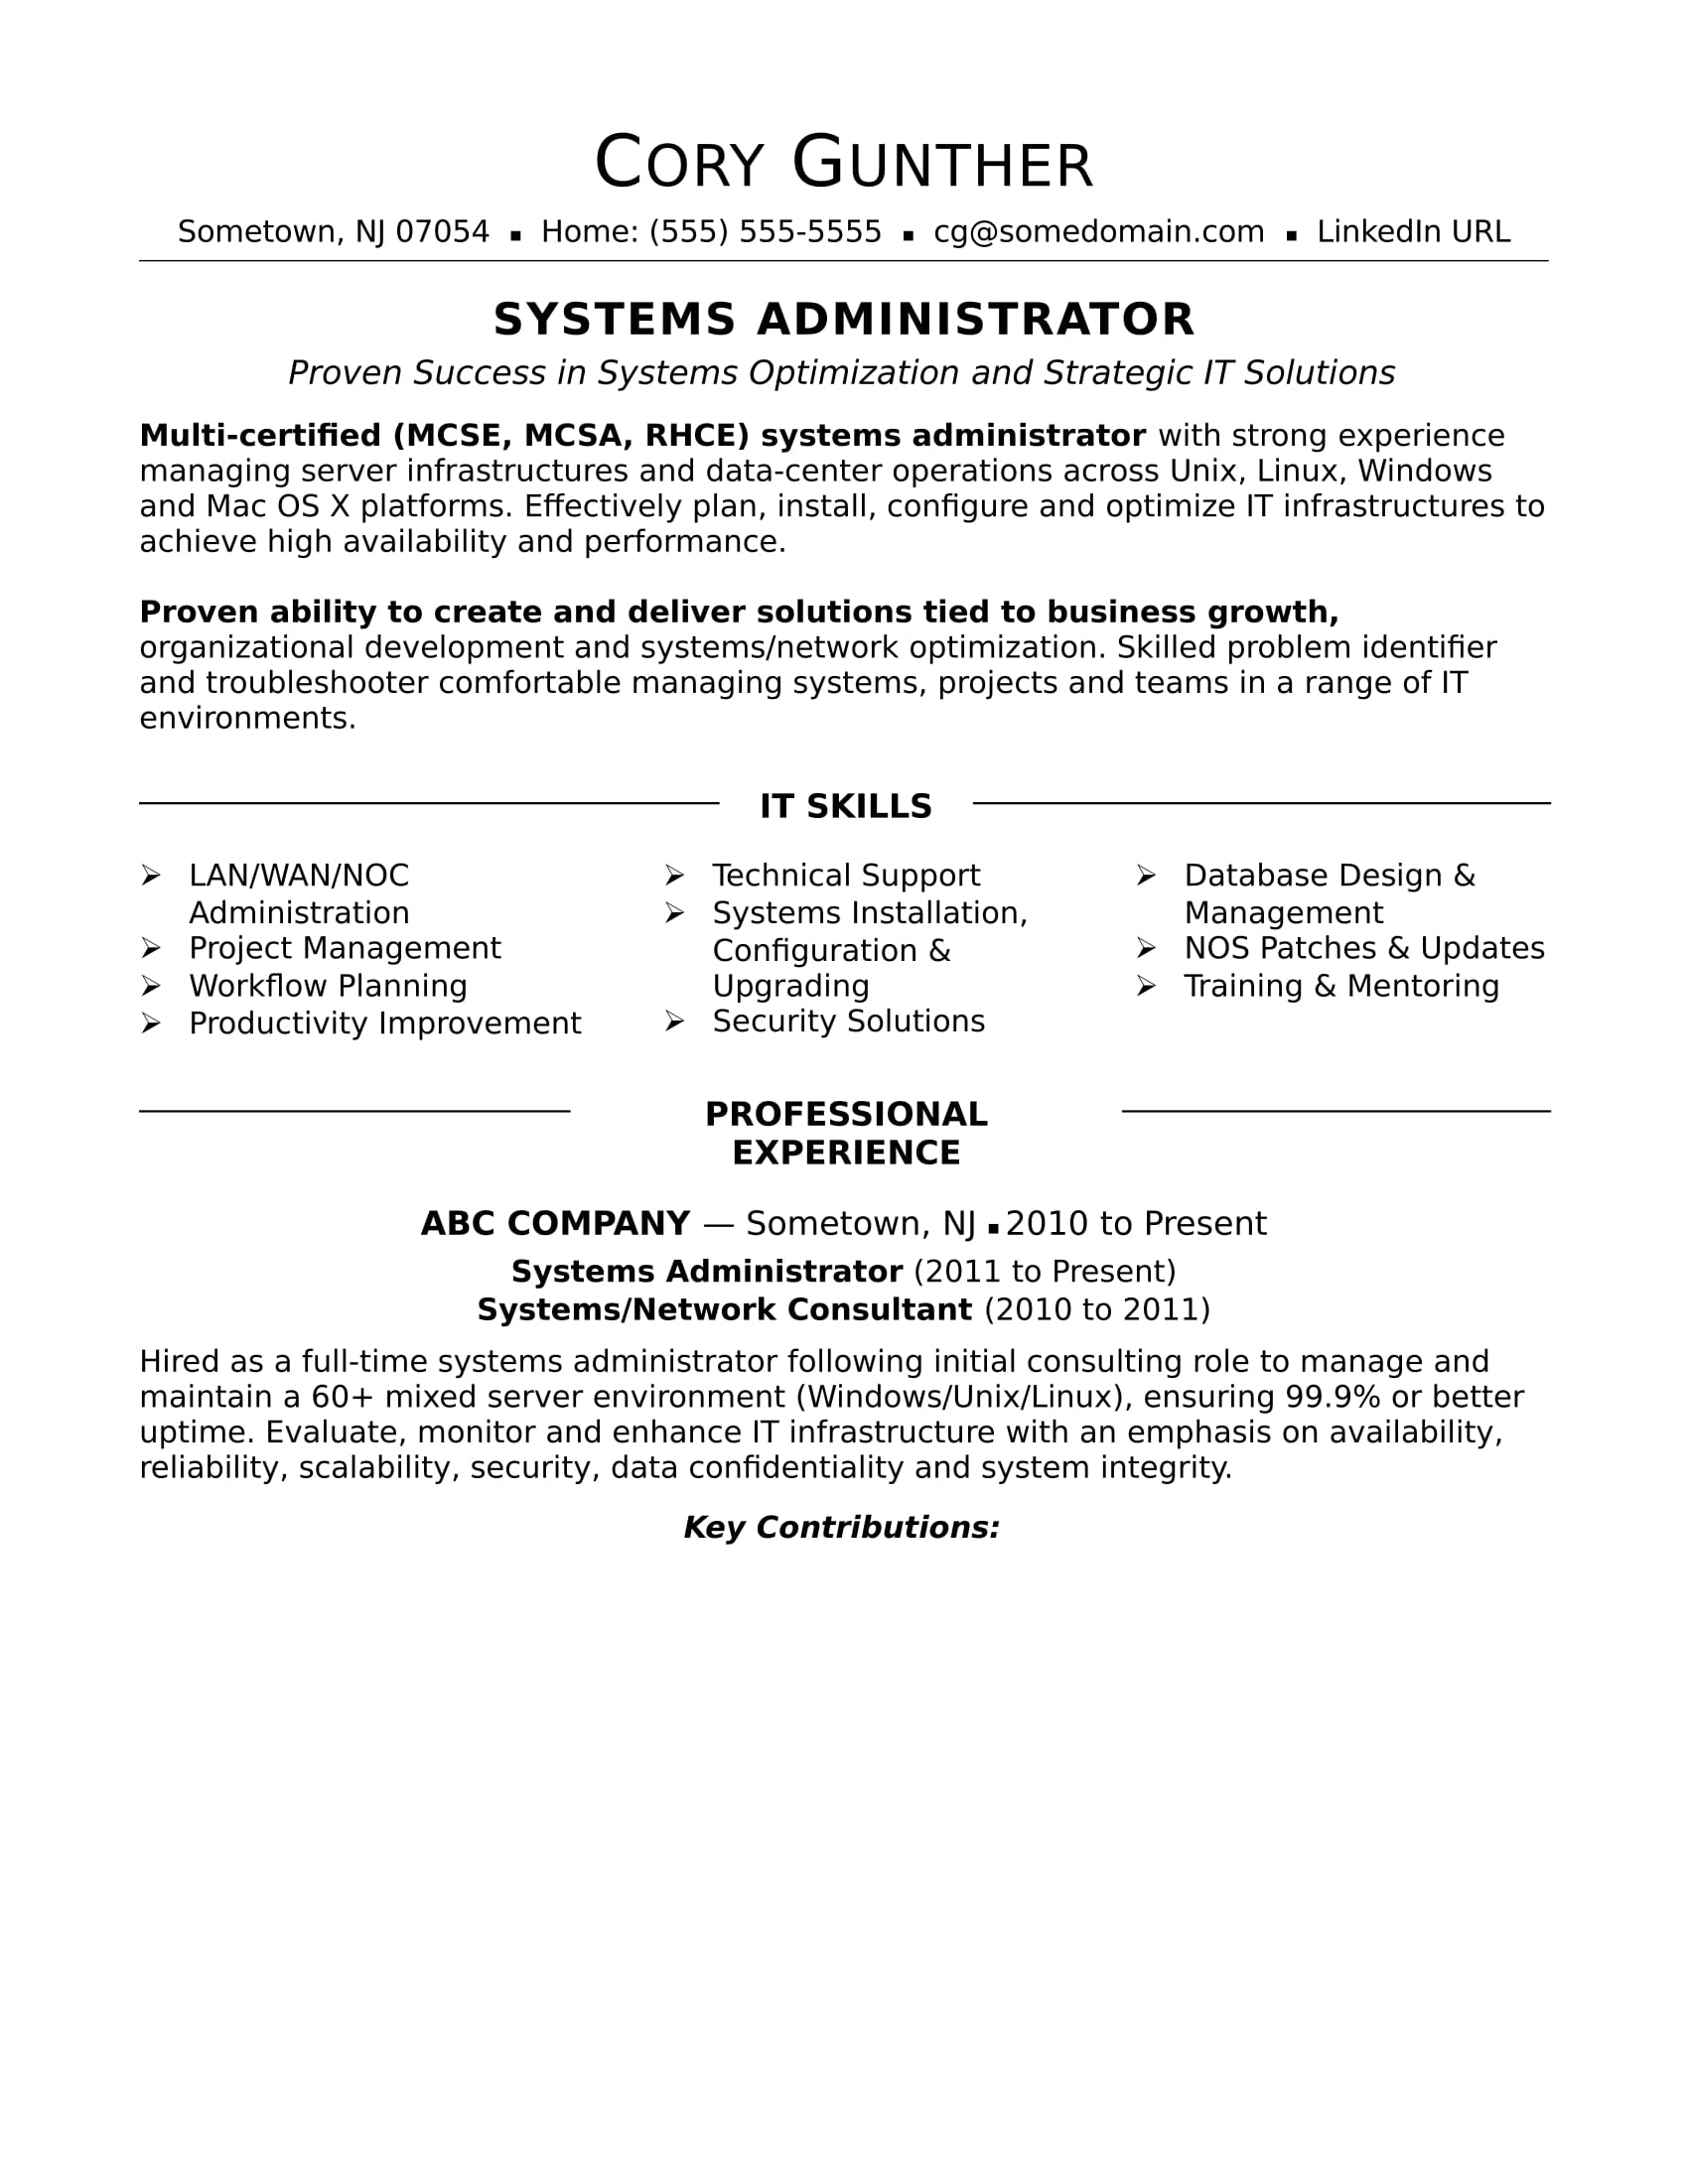 sample resume for an experienced systems administrator monster windows system experience Resume Windows System Administrator Sample Resume Experience